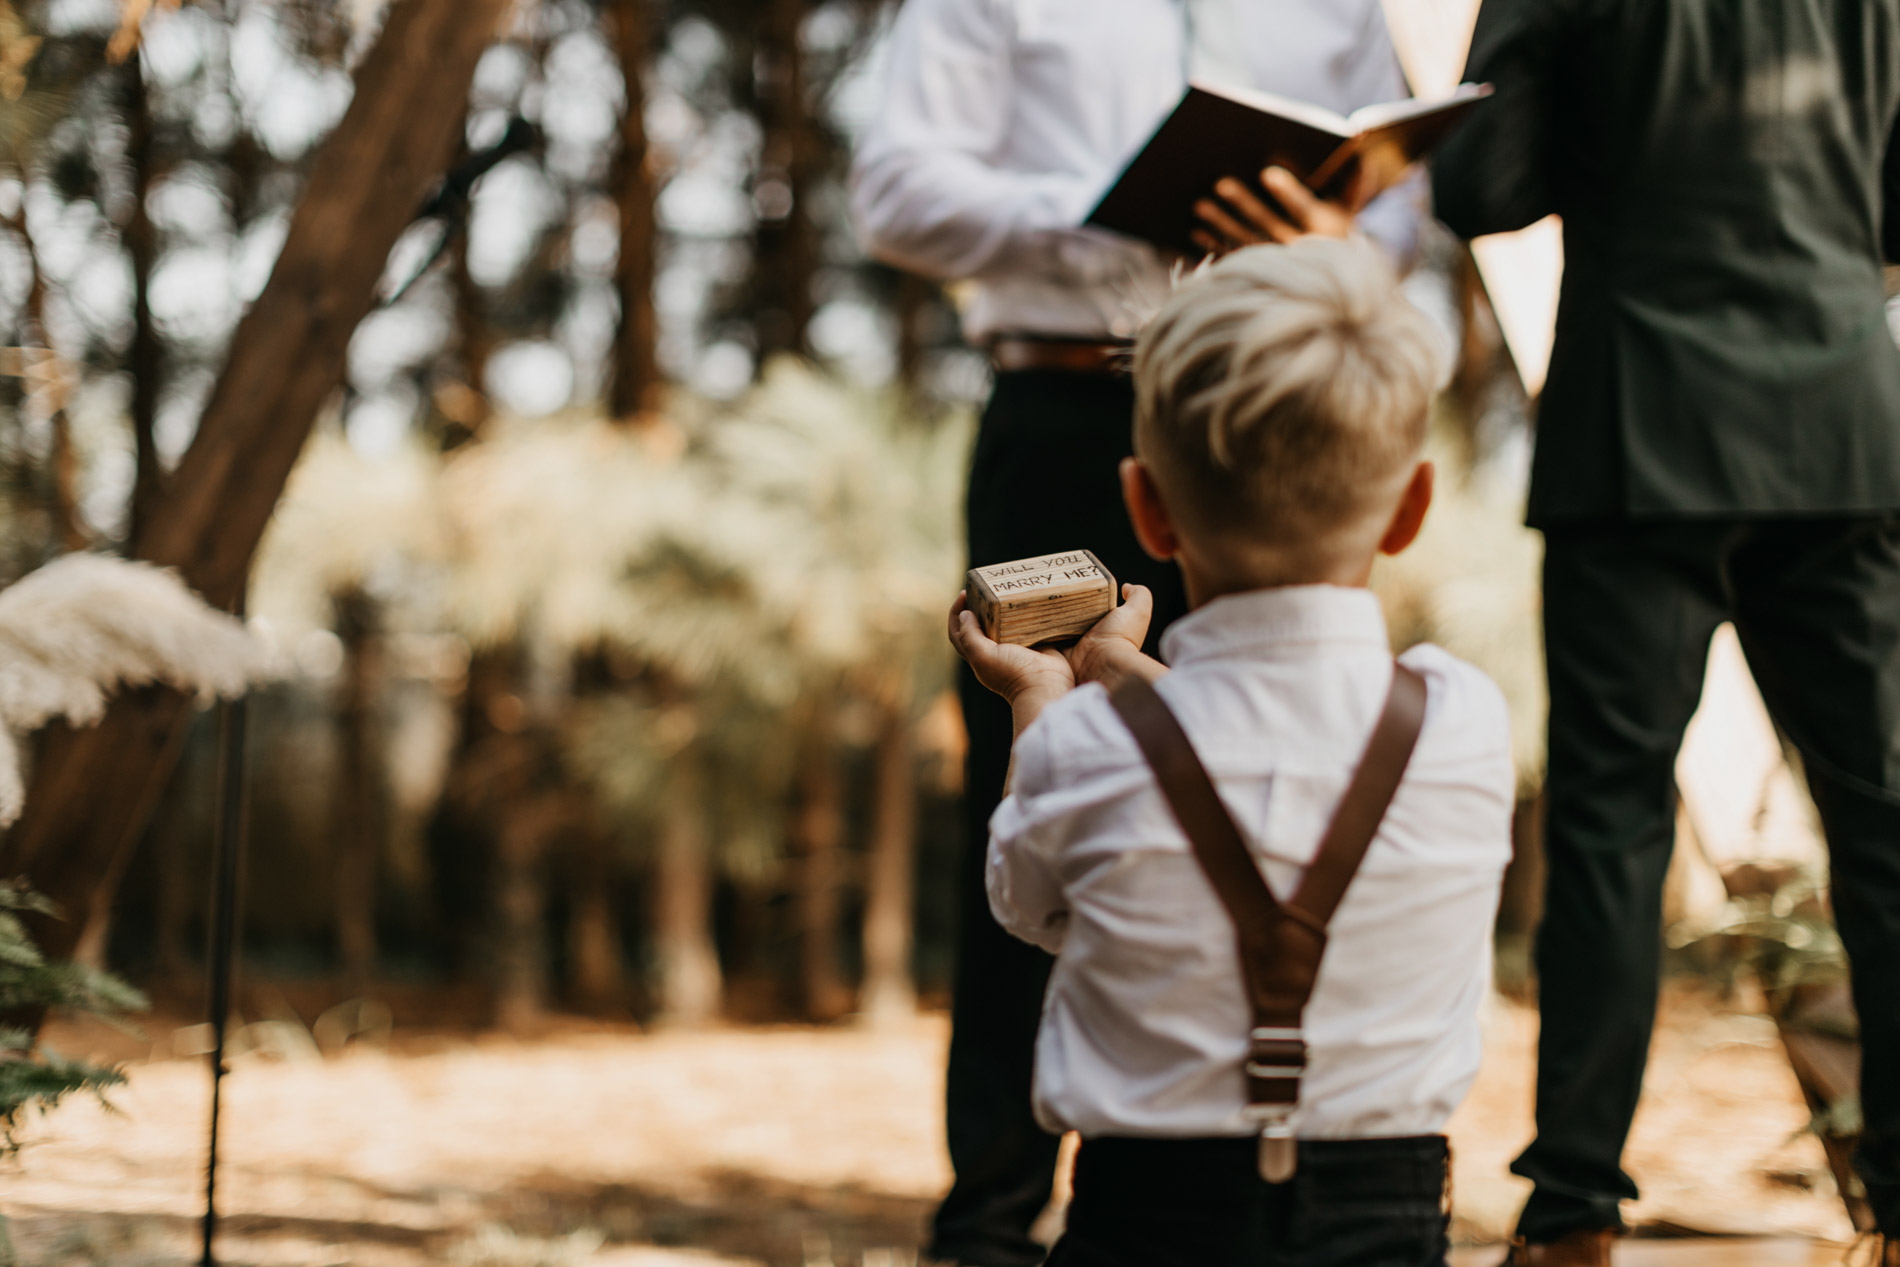 Adorable ring bearer during wedding ceremony